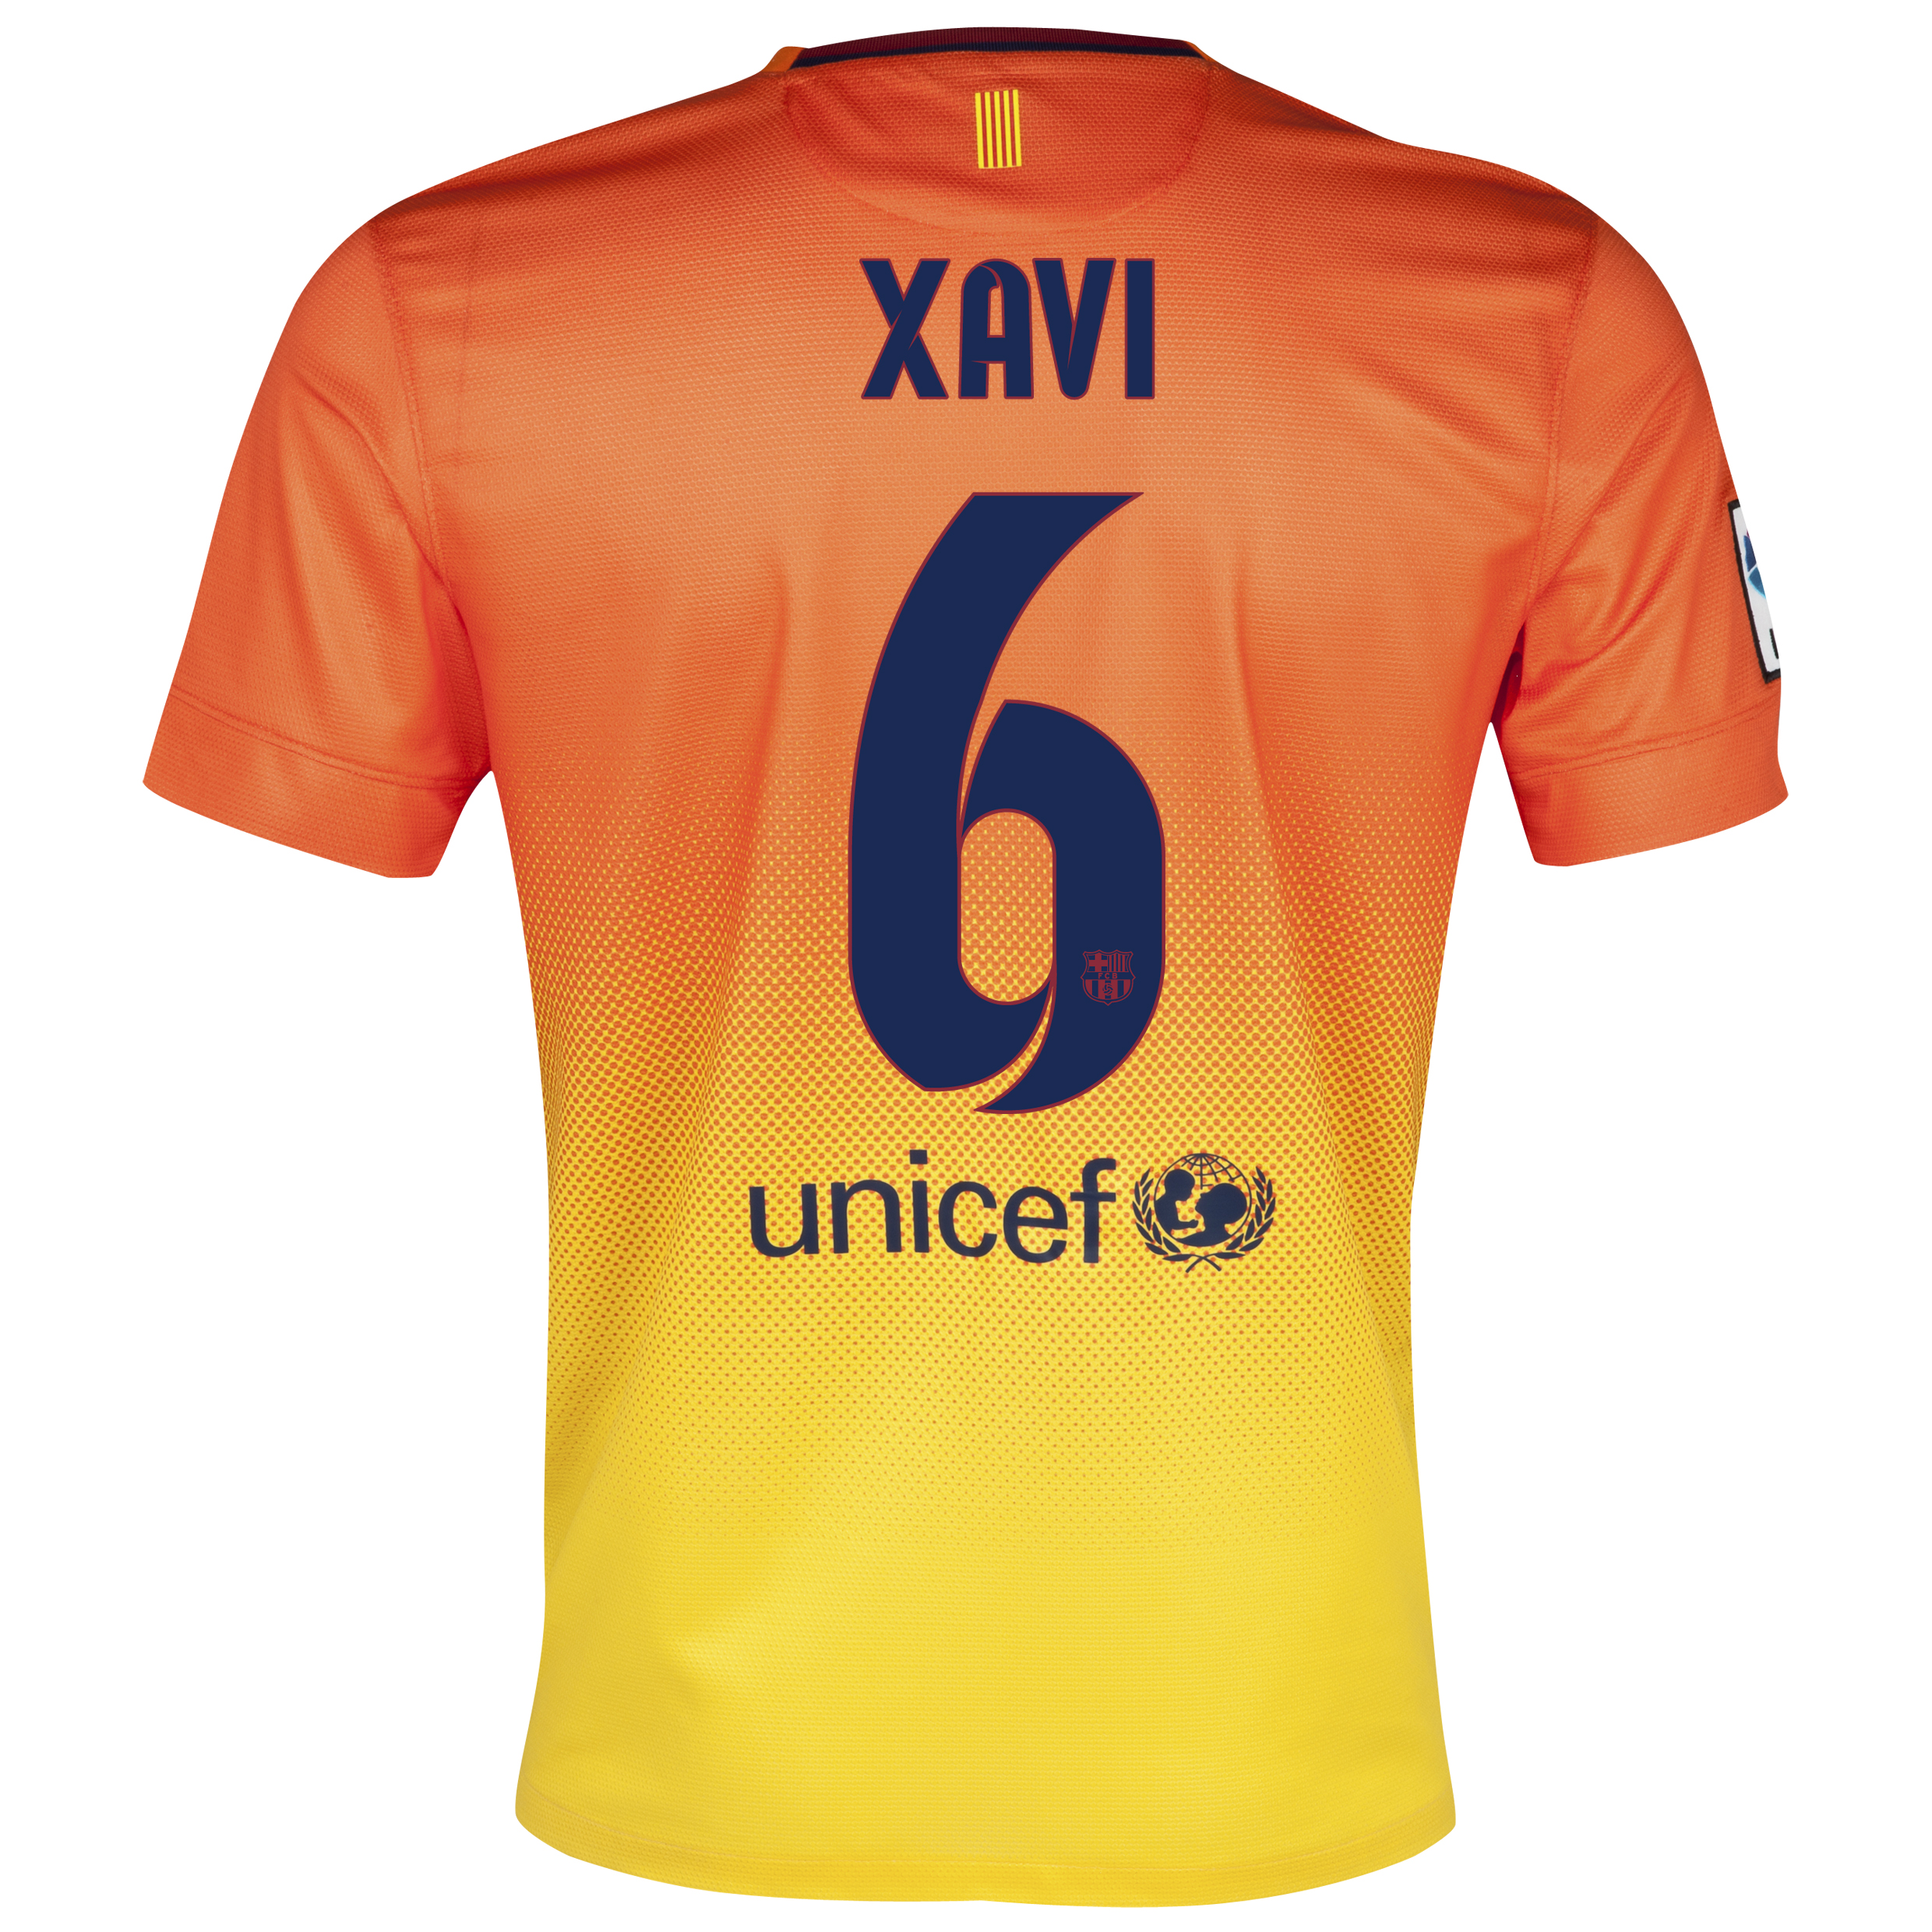 Barcelona Away Shirt 2012/13 with Xavi 6 printing